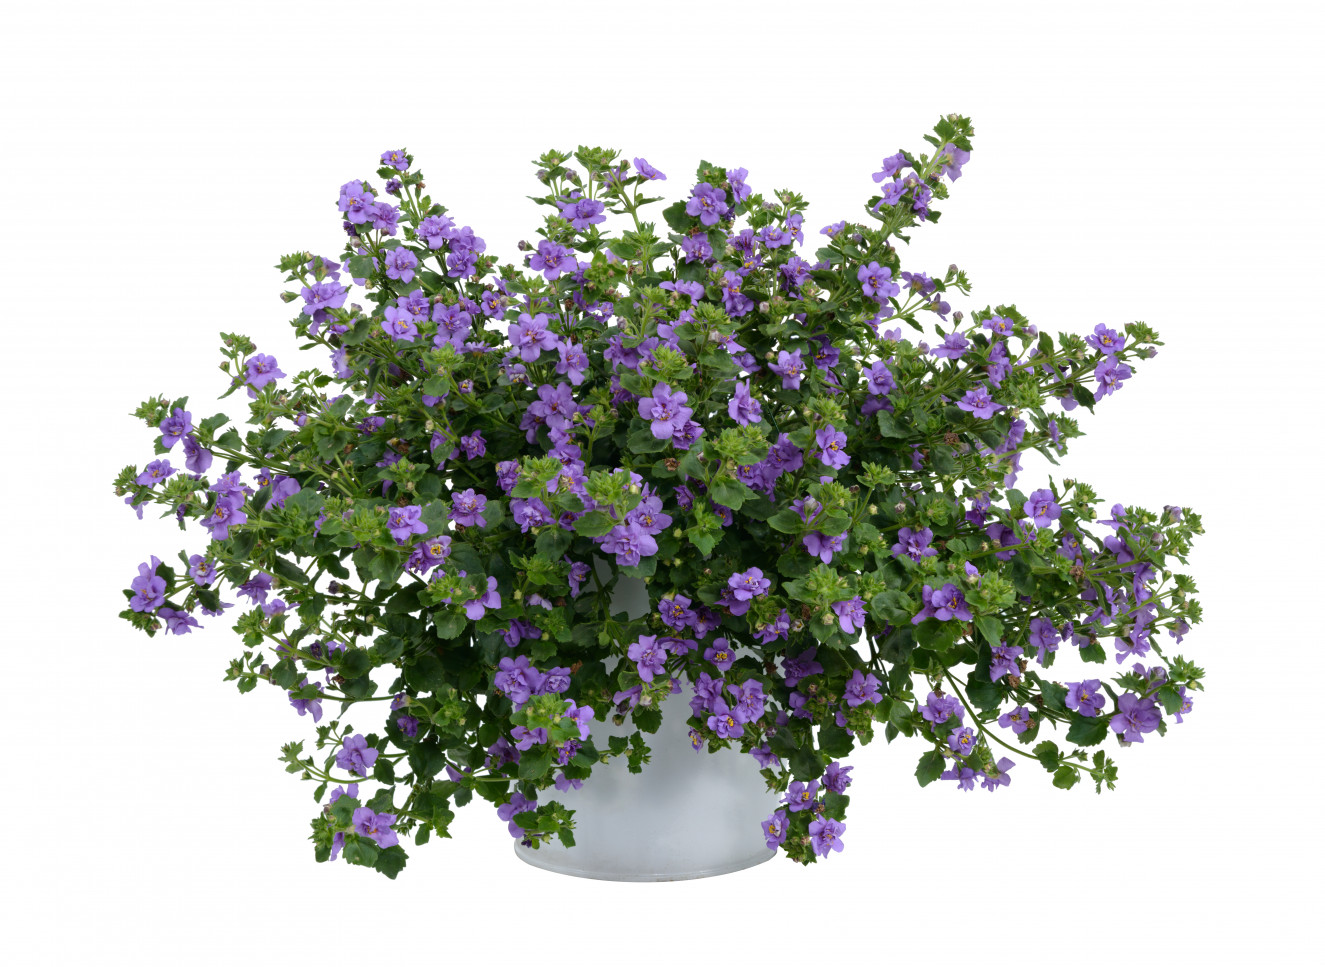 Bacopa- Scopia Double Indigo-catalog ba-11-2031-336-Edit.jpg